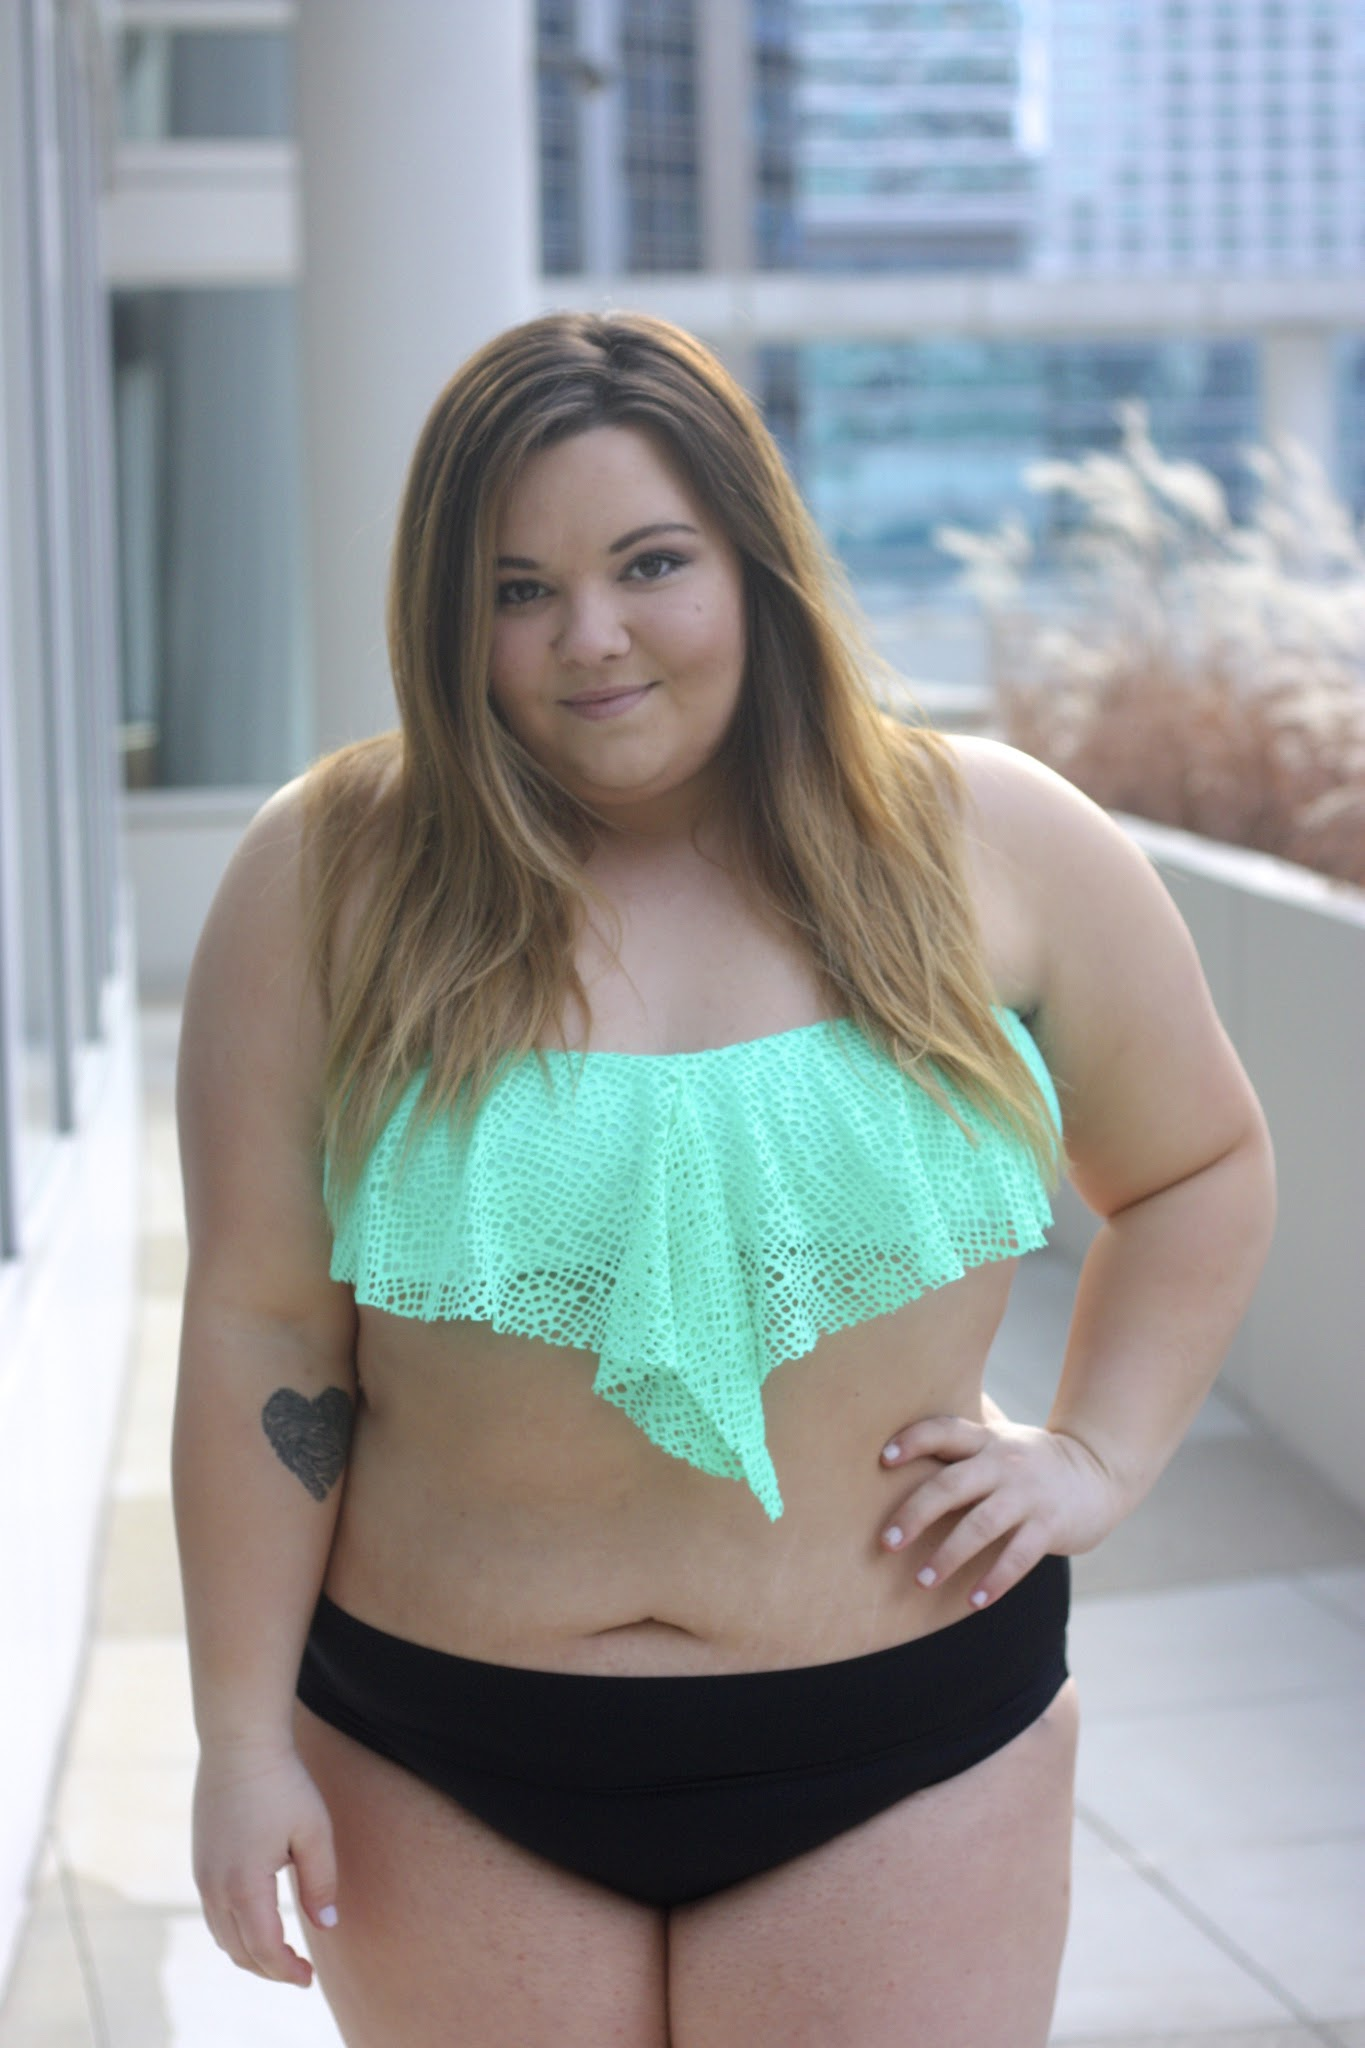 Petite and plus size fashion blogger Natalie in the city shares her favorite target bikinis and one pieces and talks about body confidence.